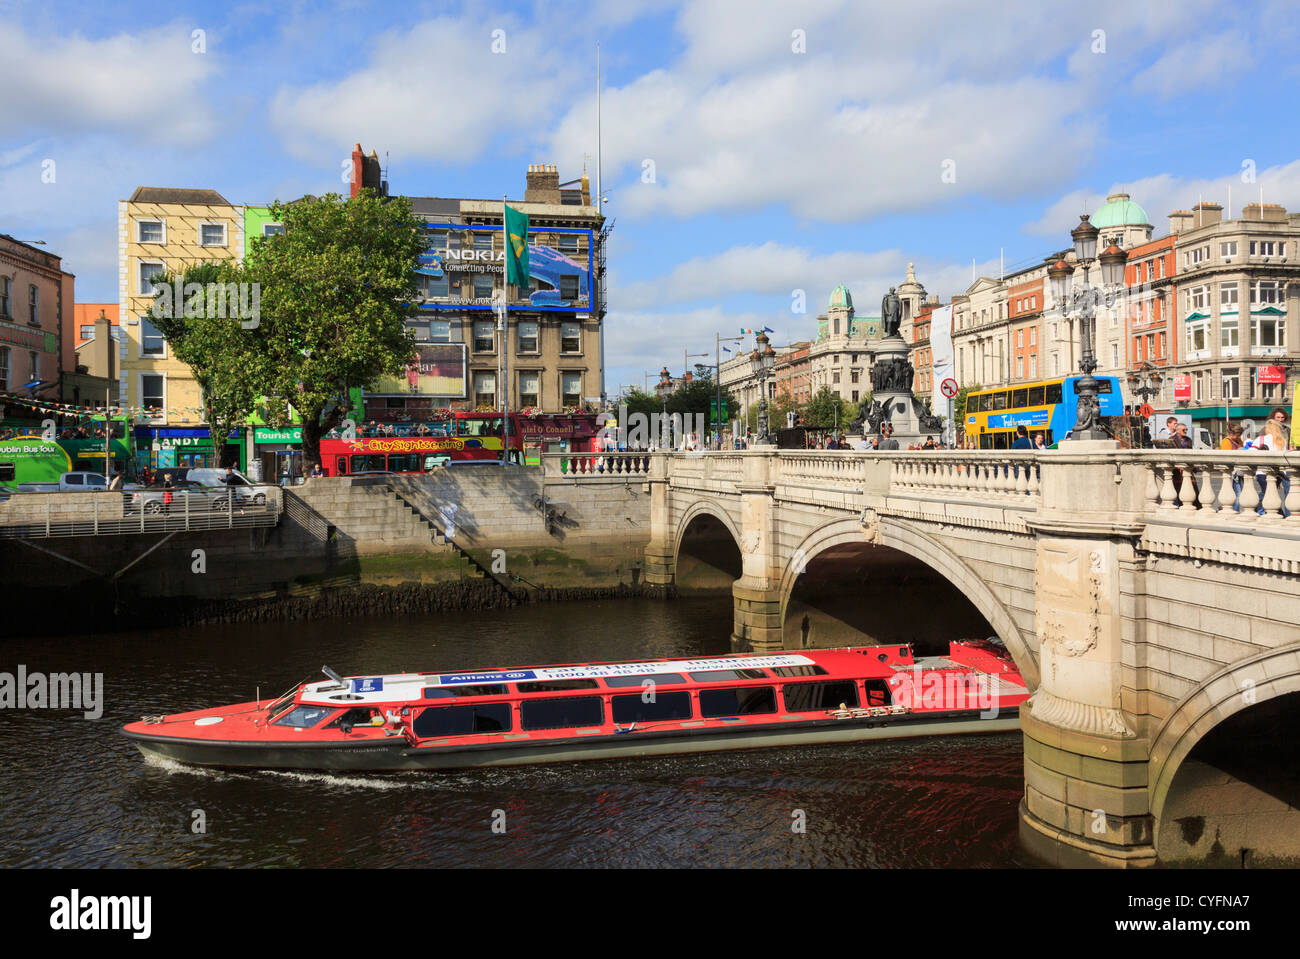 Sightseeing cruise boat passing under O'Connell Bridge on River Liffey in city centre Dublin, Republic of Ireland, - Stock Image